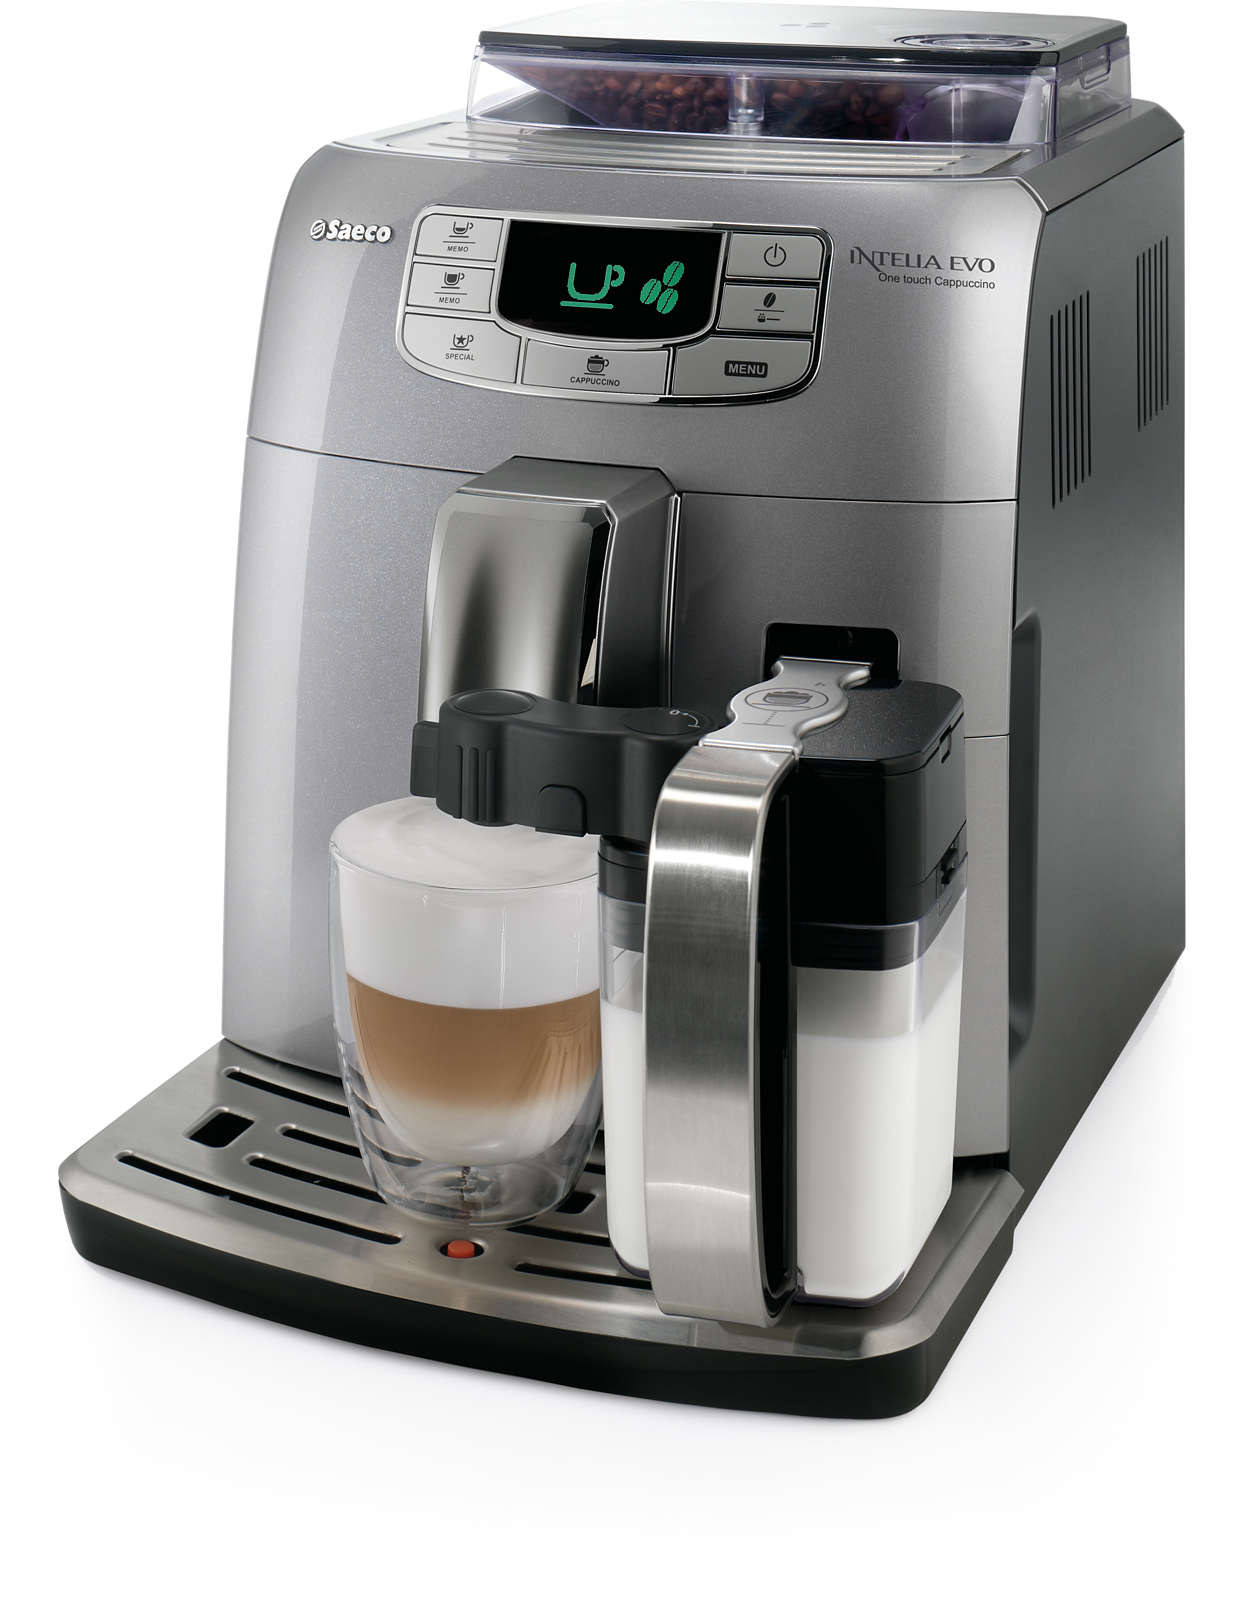 Electronic Saeco Coffee Machine Prices saeco coffee machine price 2017 the only guide you need intelia evo automatic espresso pricing